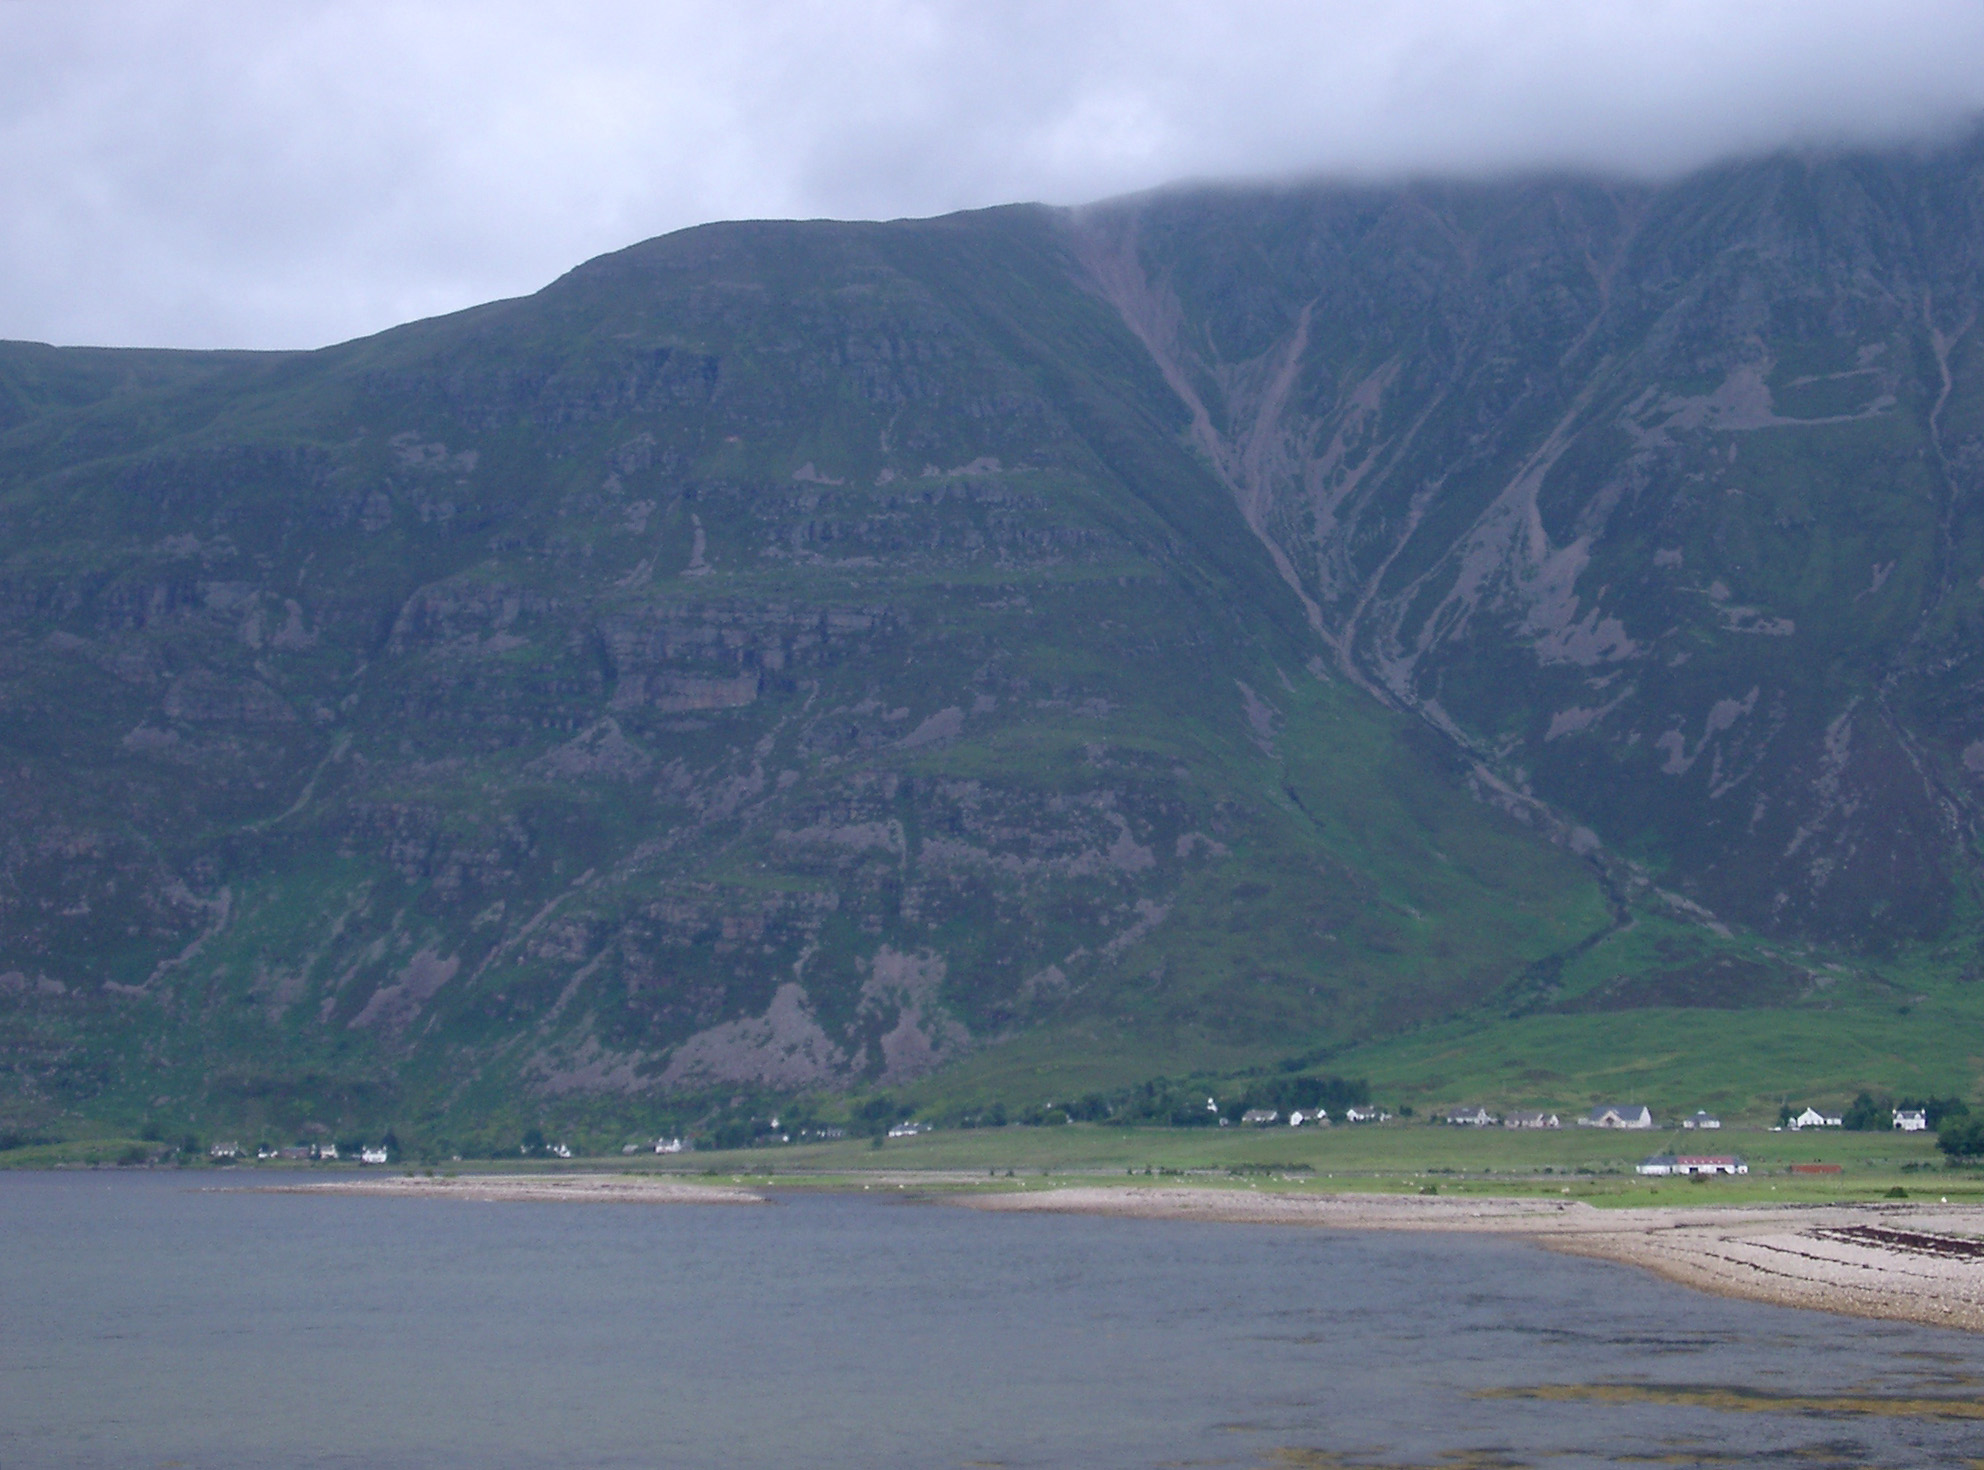 Beach and small settlement on the shores of a loch in the Scottish highlands pictured on a cold misty day